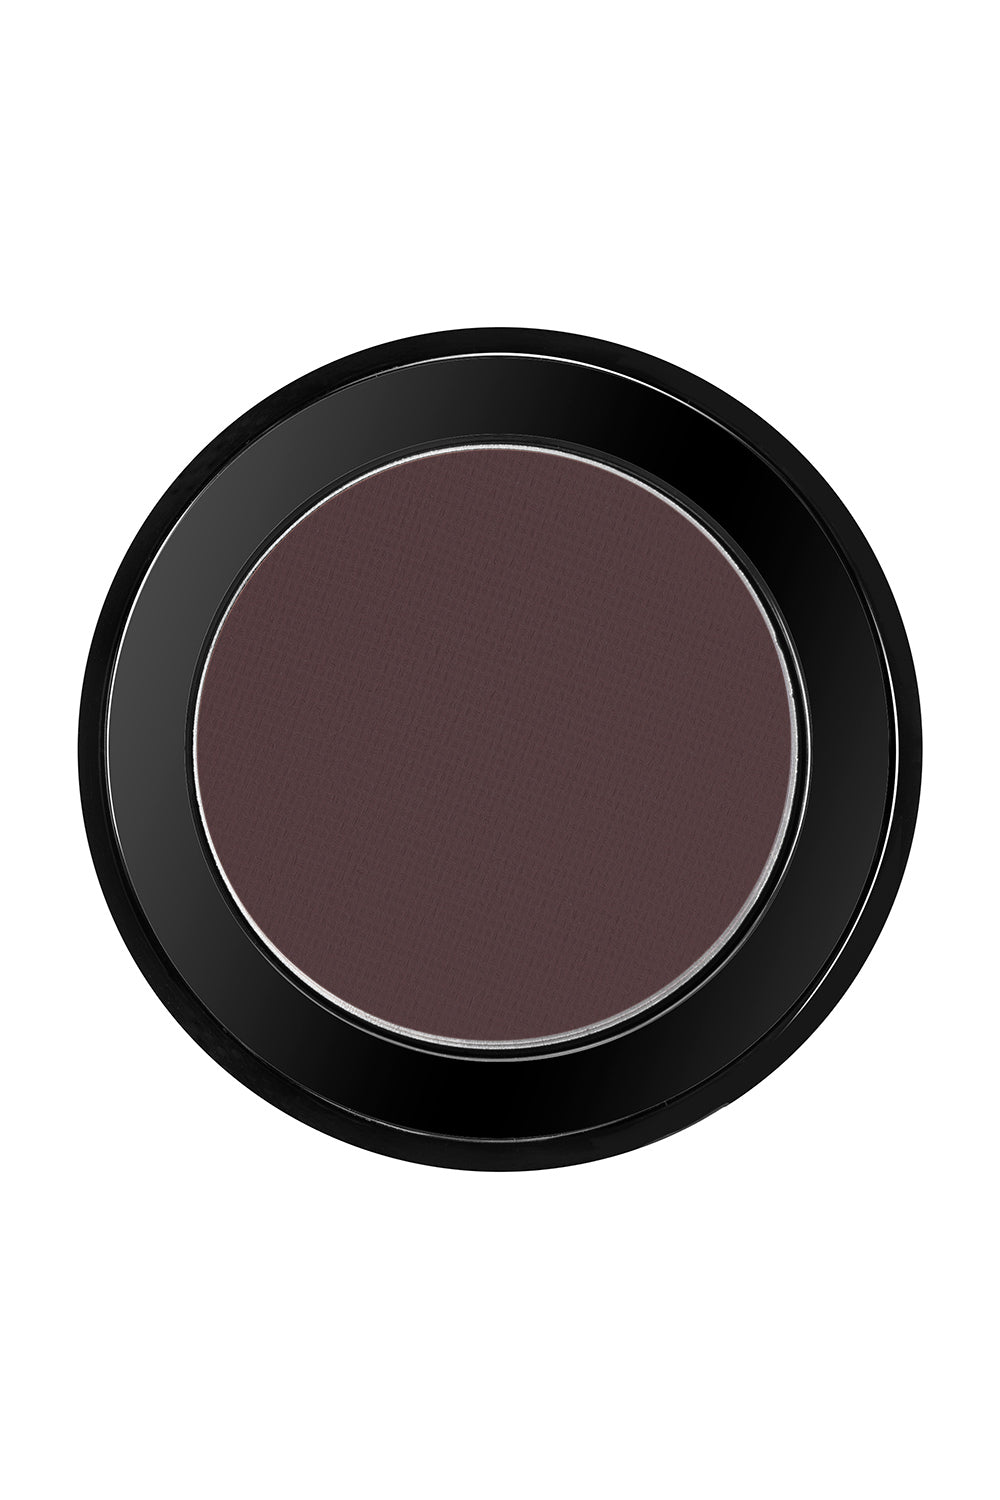 Type 3 Eyeshadow - Night Shade Matte